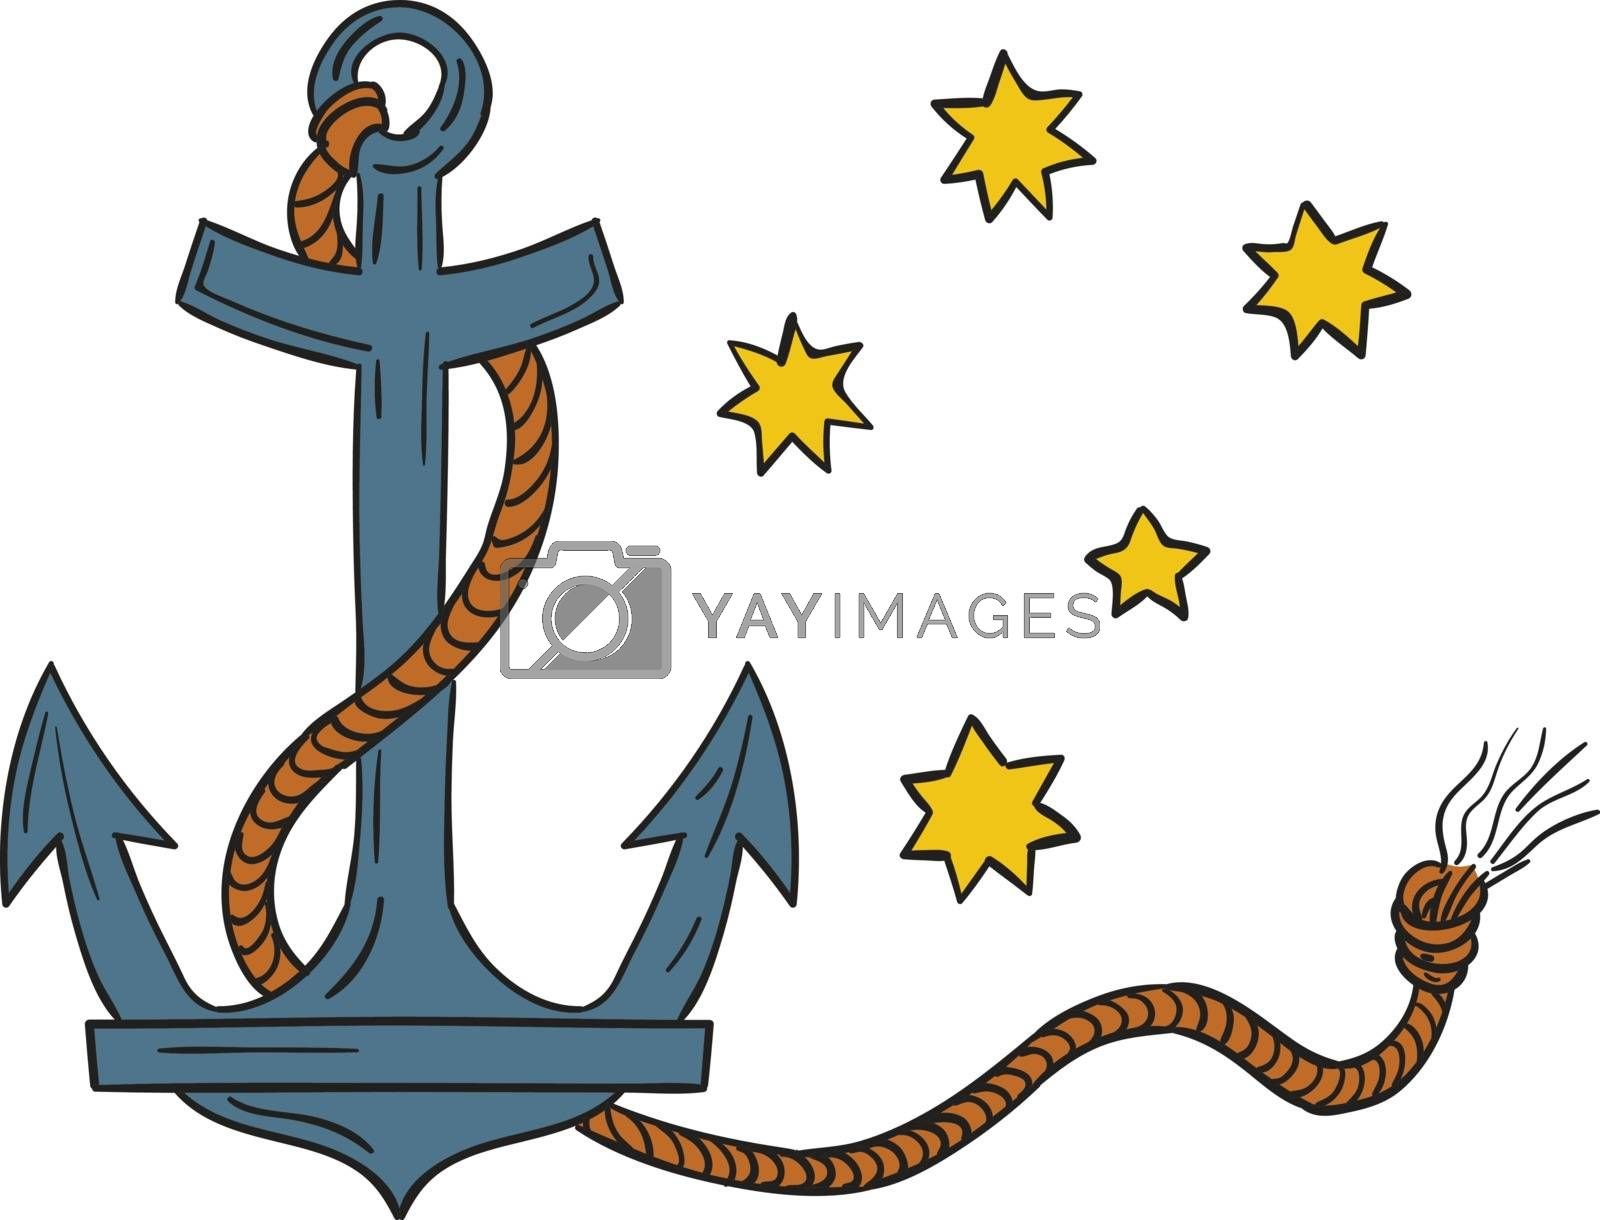 Drawing style illustration of an anchor, a device, made of metal, used to connect a vessel to sea bed to prevent the craft from drifting, with coiled rope and southern cross  star constellation in background.